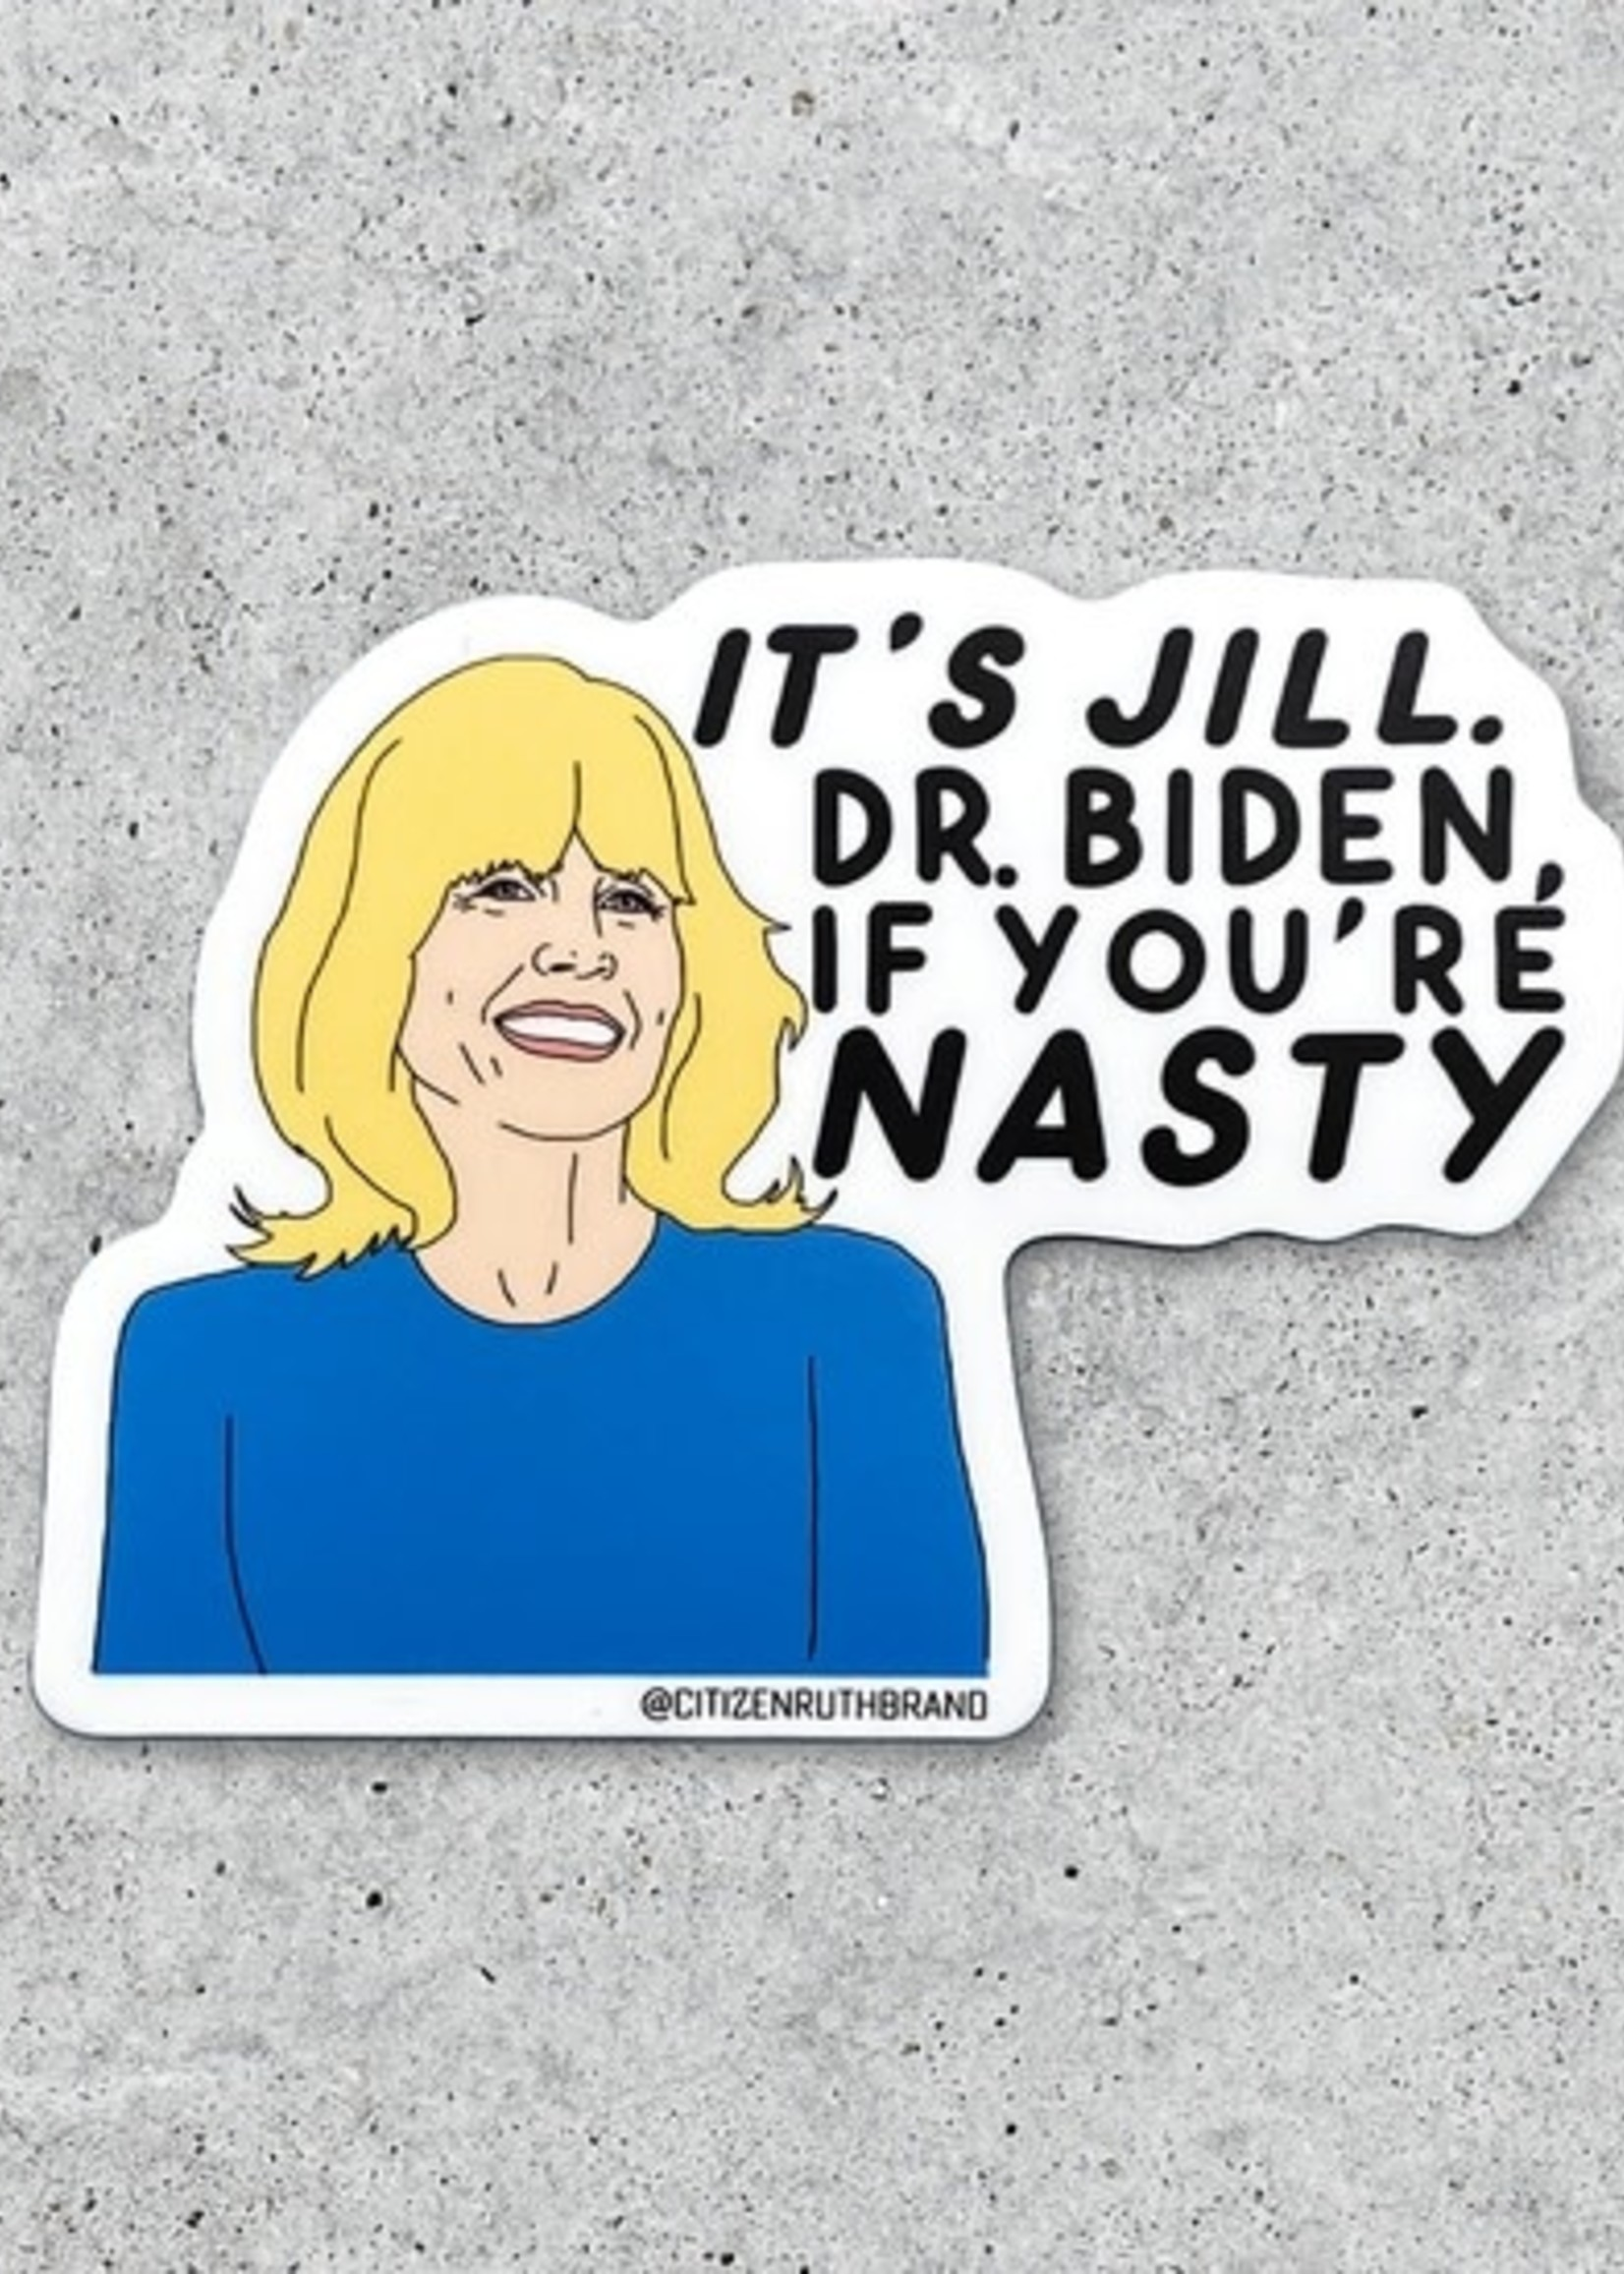 CITIZEN RUTH CITIZEN RUTH DR JILL BIDEN STICKER